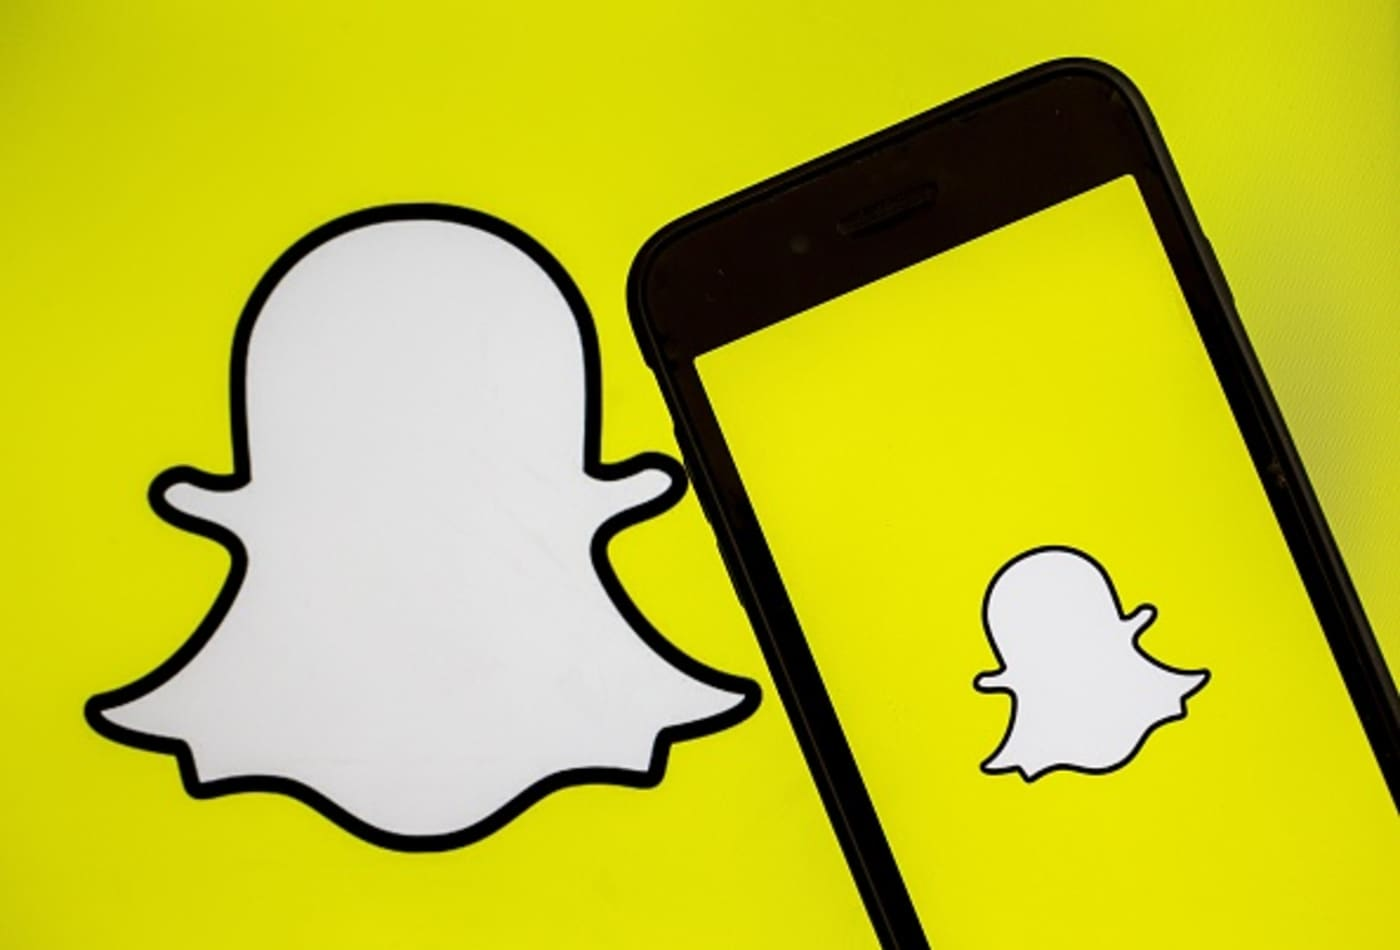 Snap could go private if it can't get people to stay on Snapchat